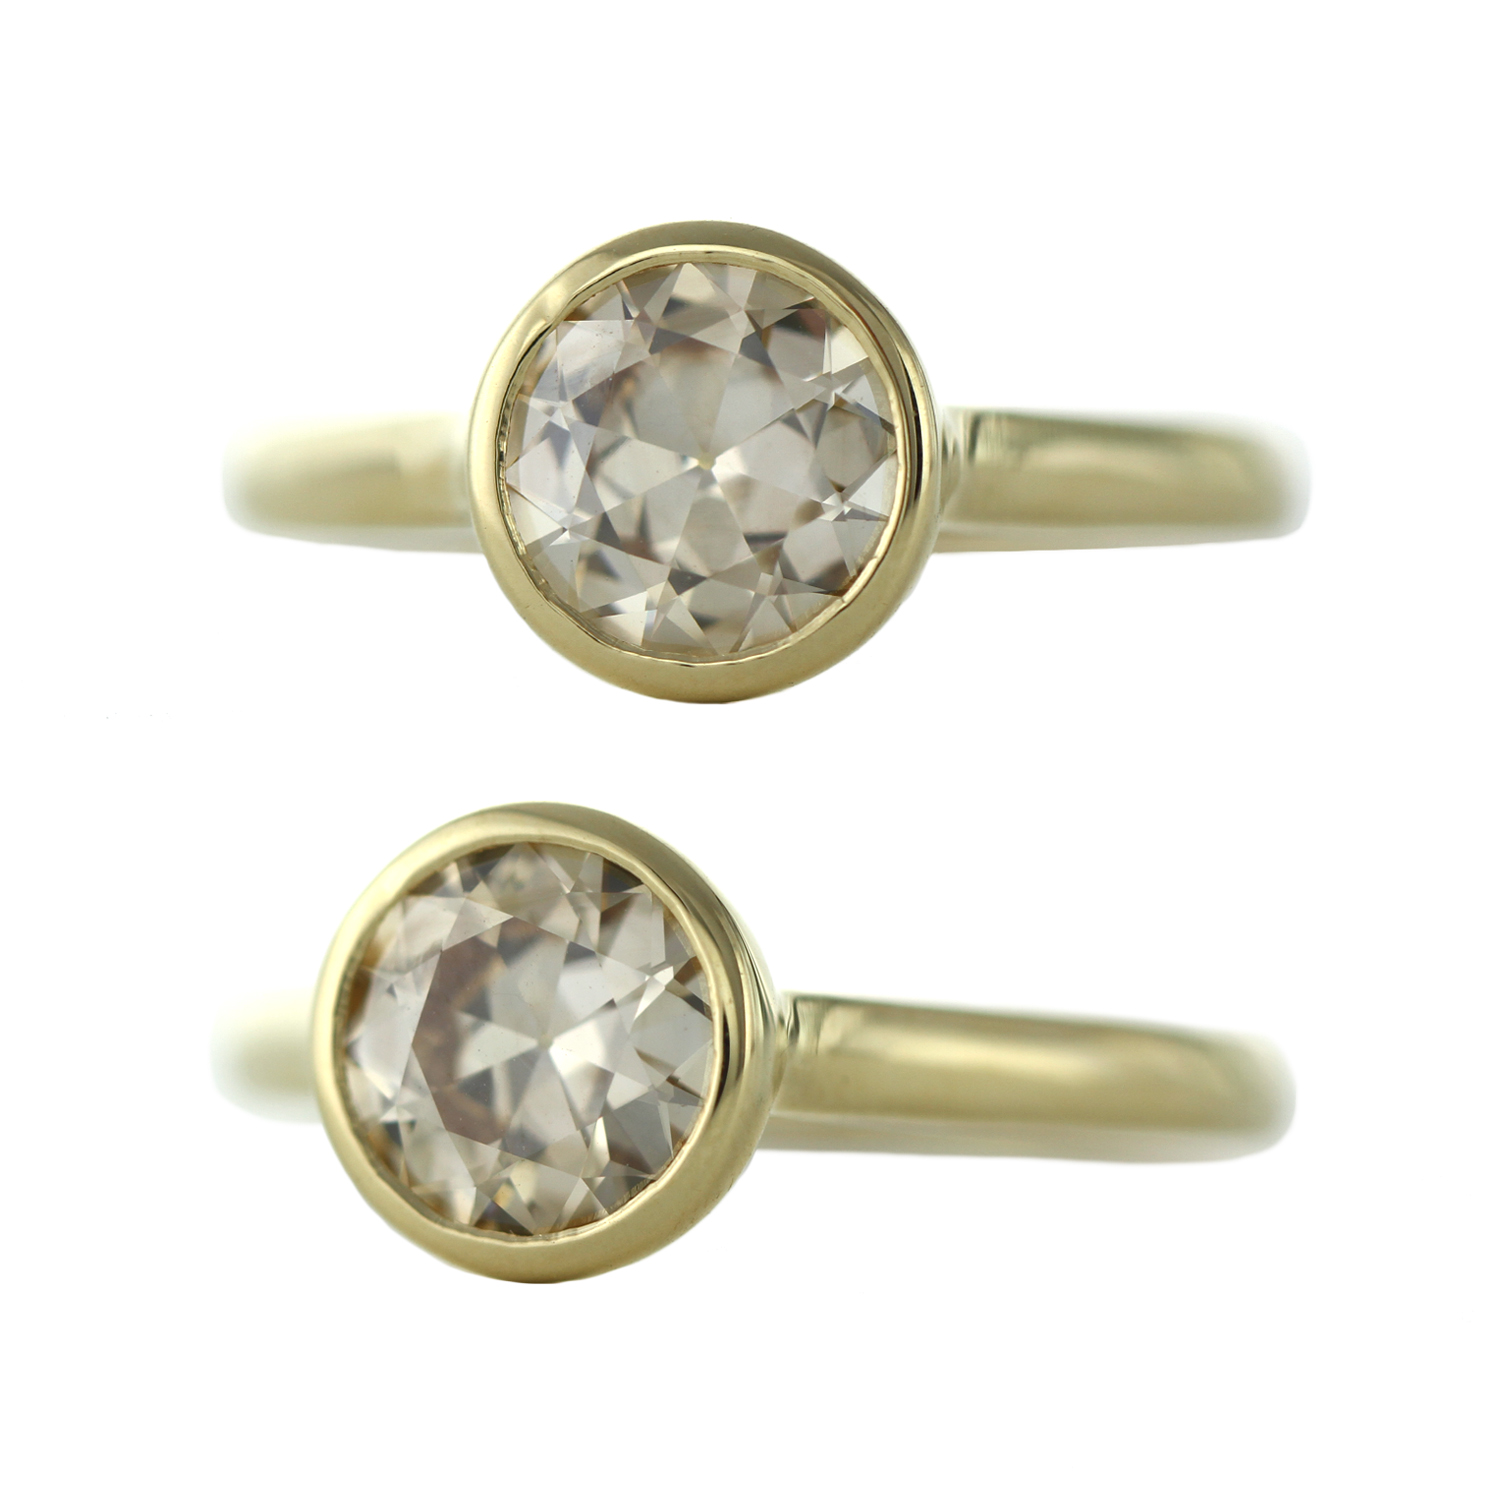 Ore Sophie Hughes Custom 18K Yellow Gold Bezel Solitaire with Champagne Diamond